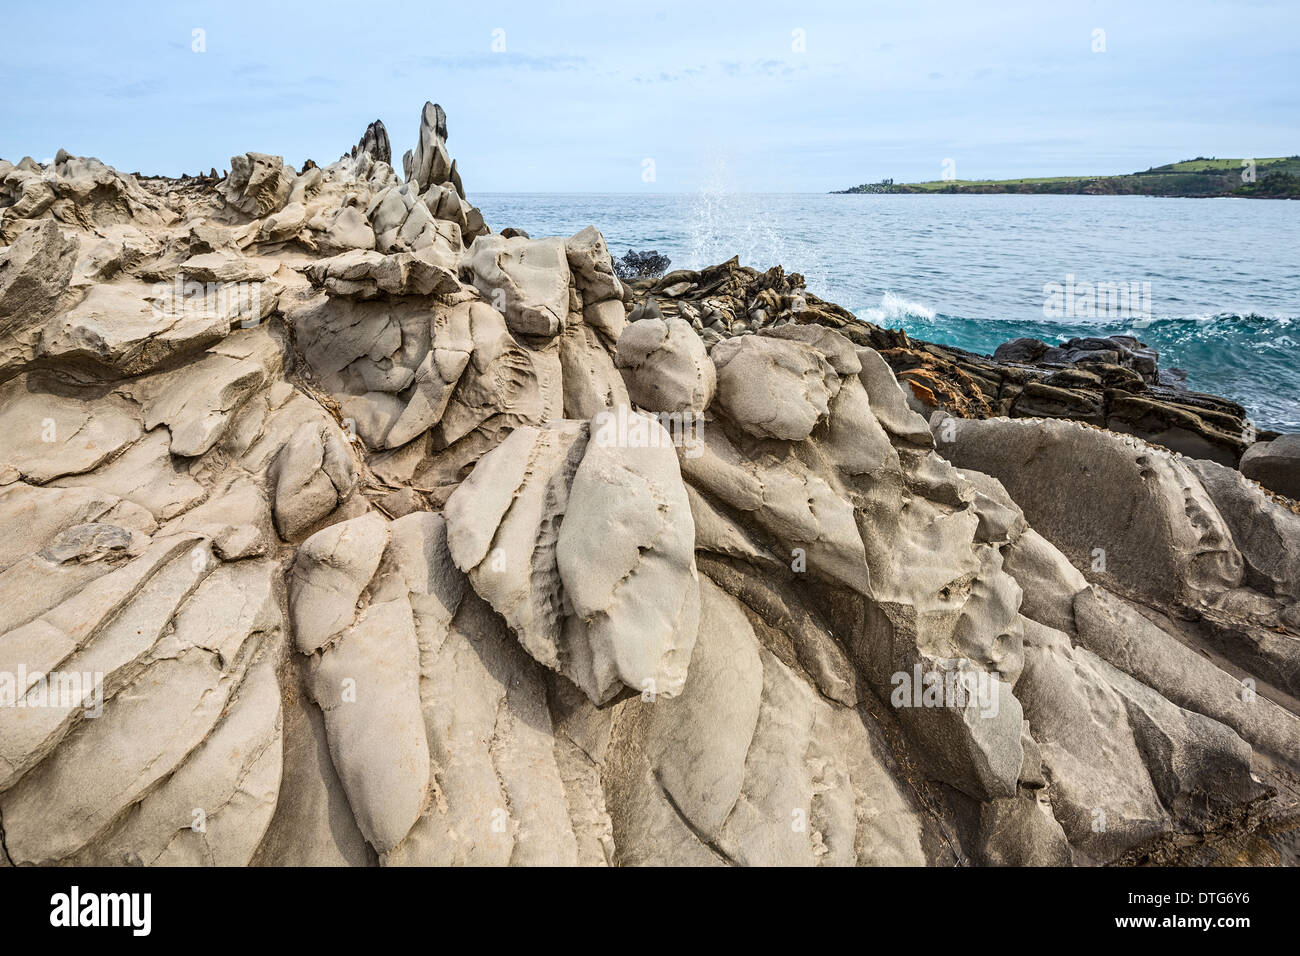 Dramatic lava rock formation called the Dragon's Teeth in Maui. - Stock Image